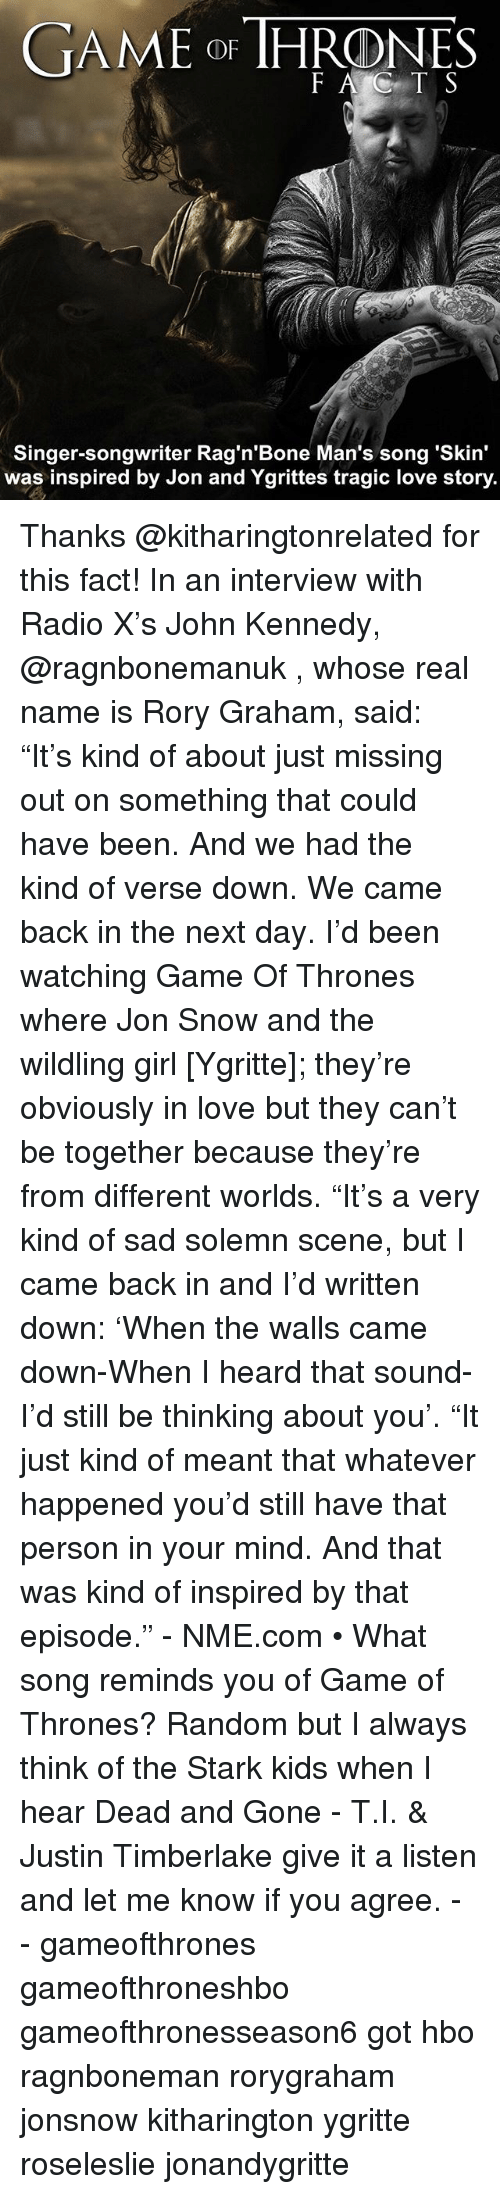 "Game of Thrones, Hbo, and Justin TImberlake: GAME DE THRONE  Singer-songwriter Rag'n'Bone Man's song 'skin'  was inspired by Jon and Ygrittes tragic love story. Thanks @kitharingtonrelated for this fact! In an interview with Radio X's John Kennedy, @ragnbonemanuk , whose real name is Rory Graham, said: ""It's kind of about just missing out on something that could have been. And we had the kind of verse down. We came back in the next day. I'd been watching Game Of Thrones where Jon Snow and the wildling girl [Ygritte]; they're obviously in love but they can't be together because they're from different worlds. ""It's a very kind of sad solemn scene, but I came back in and I'd written down: 'When the walls came down-When I heard that sound-I'd still be thinking about you'. ""It just kind of meant that whatever happened you'd still have that person in your mind. And that was kind of inspired by that episode."" - NME.com • What song reminds you of Game of Thrones? Random but I always think of the Stark kids when I hear Dead and Gone - T.I. & Justin Timberlake give it a listen and let me know if you agree. - - gameofthrones gameofthroneshbo gameofthronesseason6 got hbo ragnboneman rorygraham jonsnow kitharington ygritte roseleslie jonandygritte"